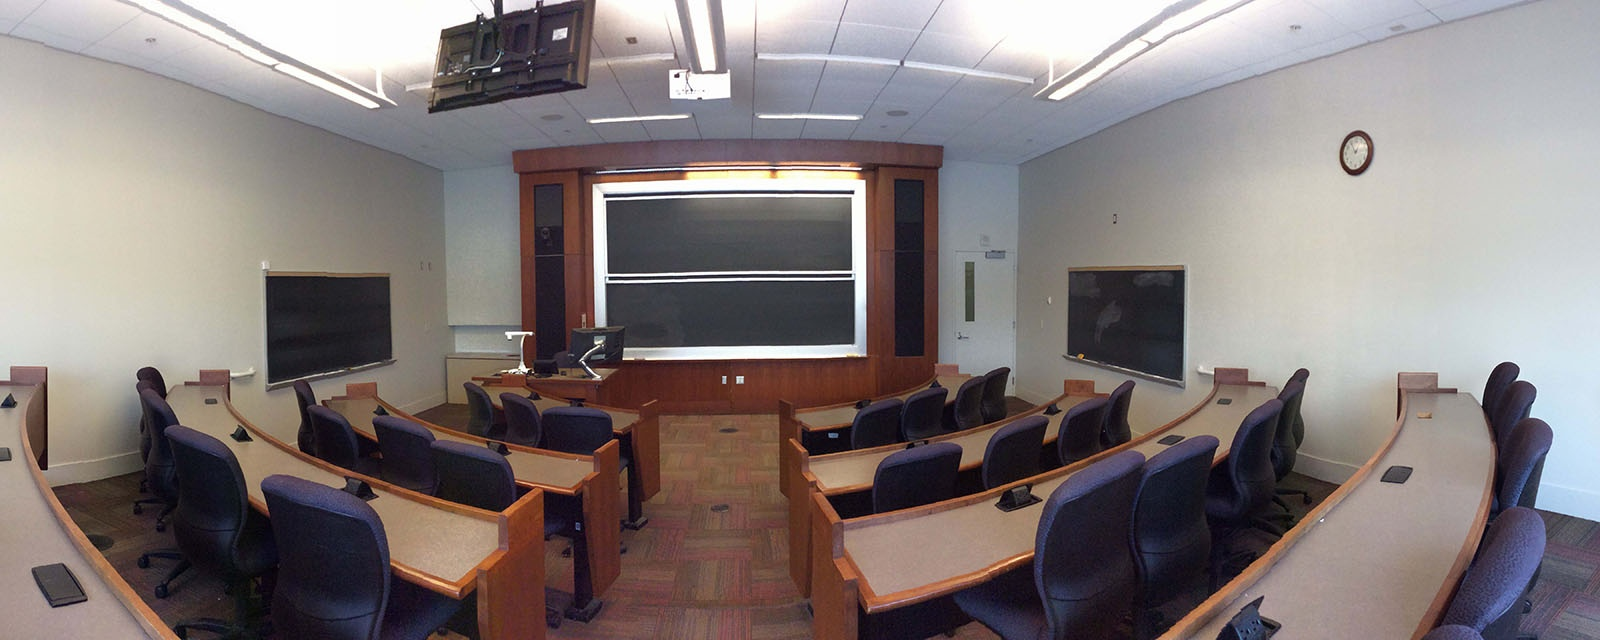 Panorama SOM 302 from back of room, stadium seating, movable chairs, teaching station in front left